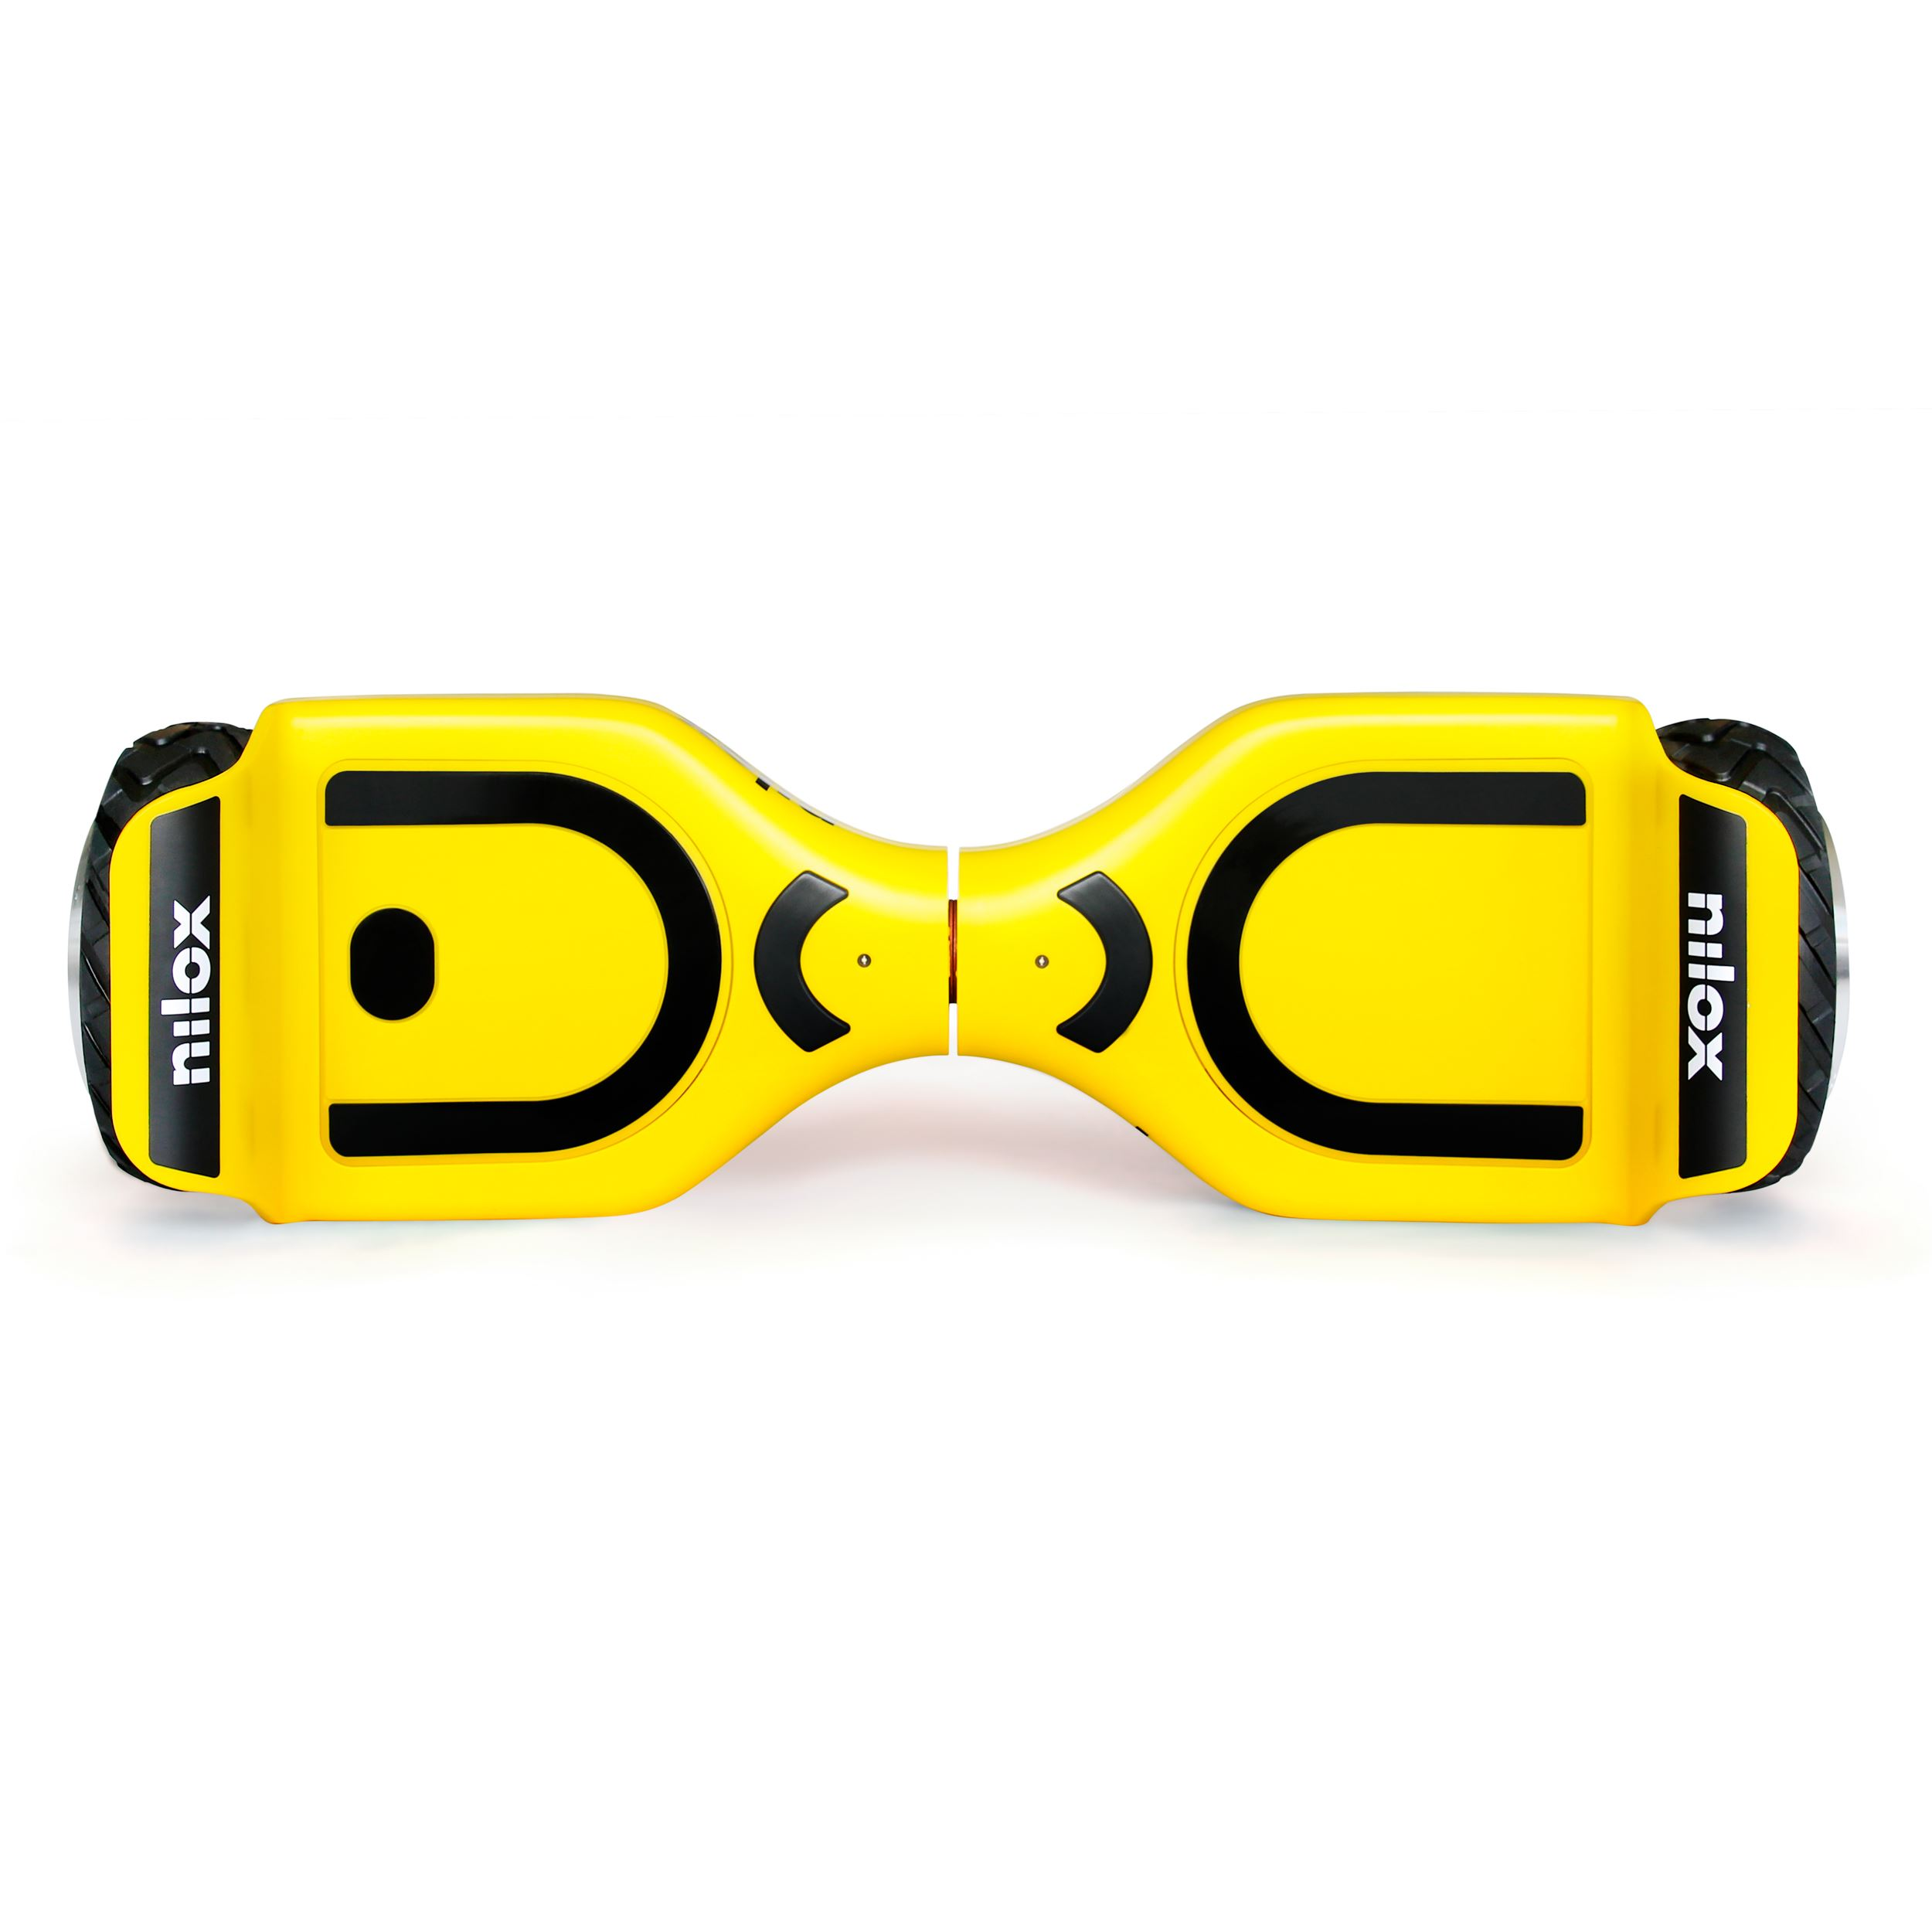 doc-2-hoverboard-yellow-30nxbk65nwn03-505148-hd.jpg